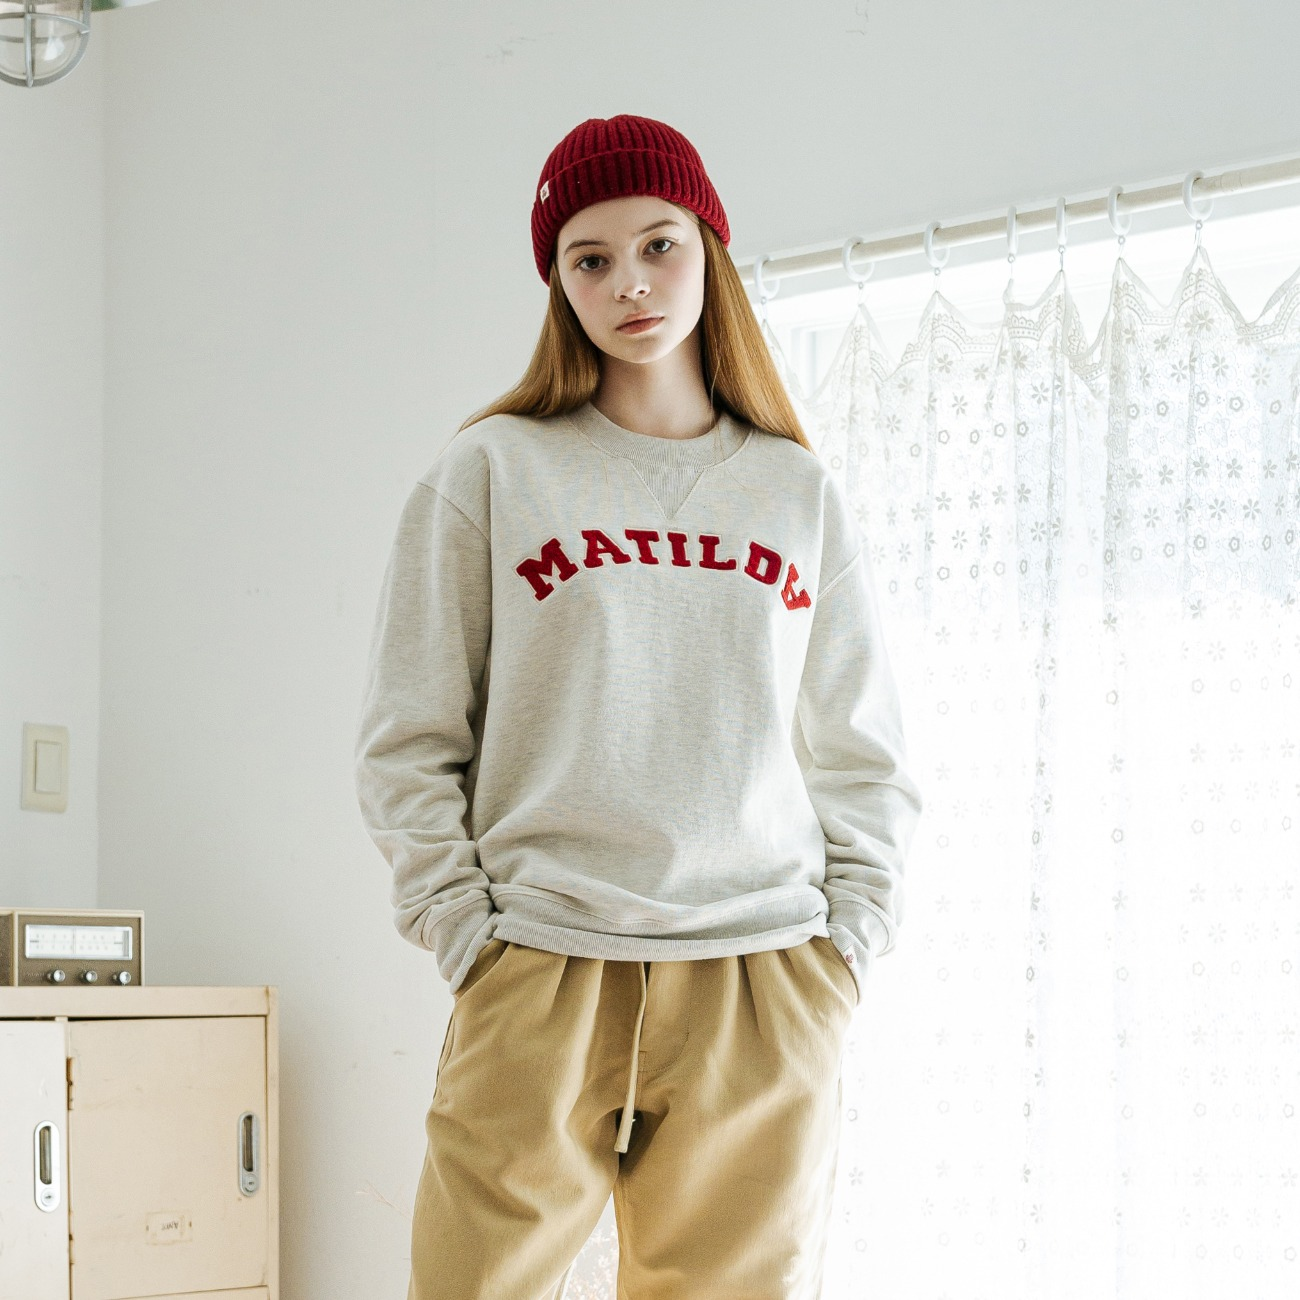 890g Matilda Sweat Shirt